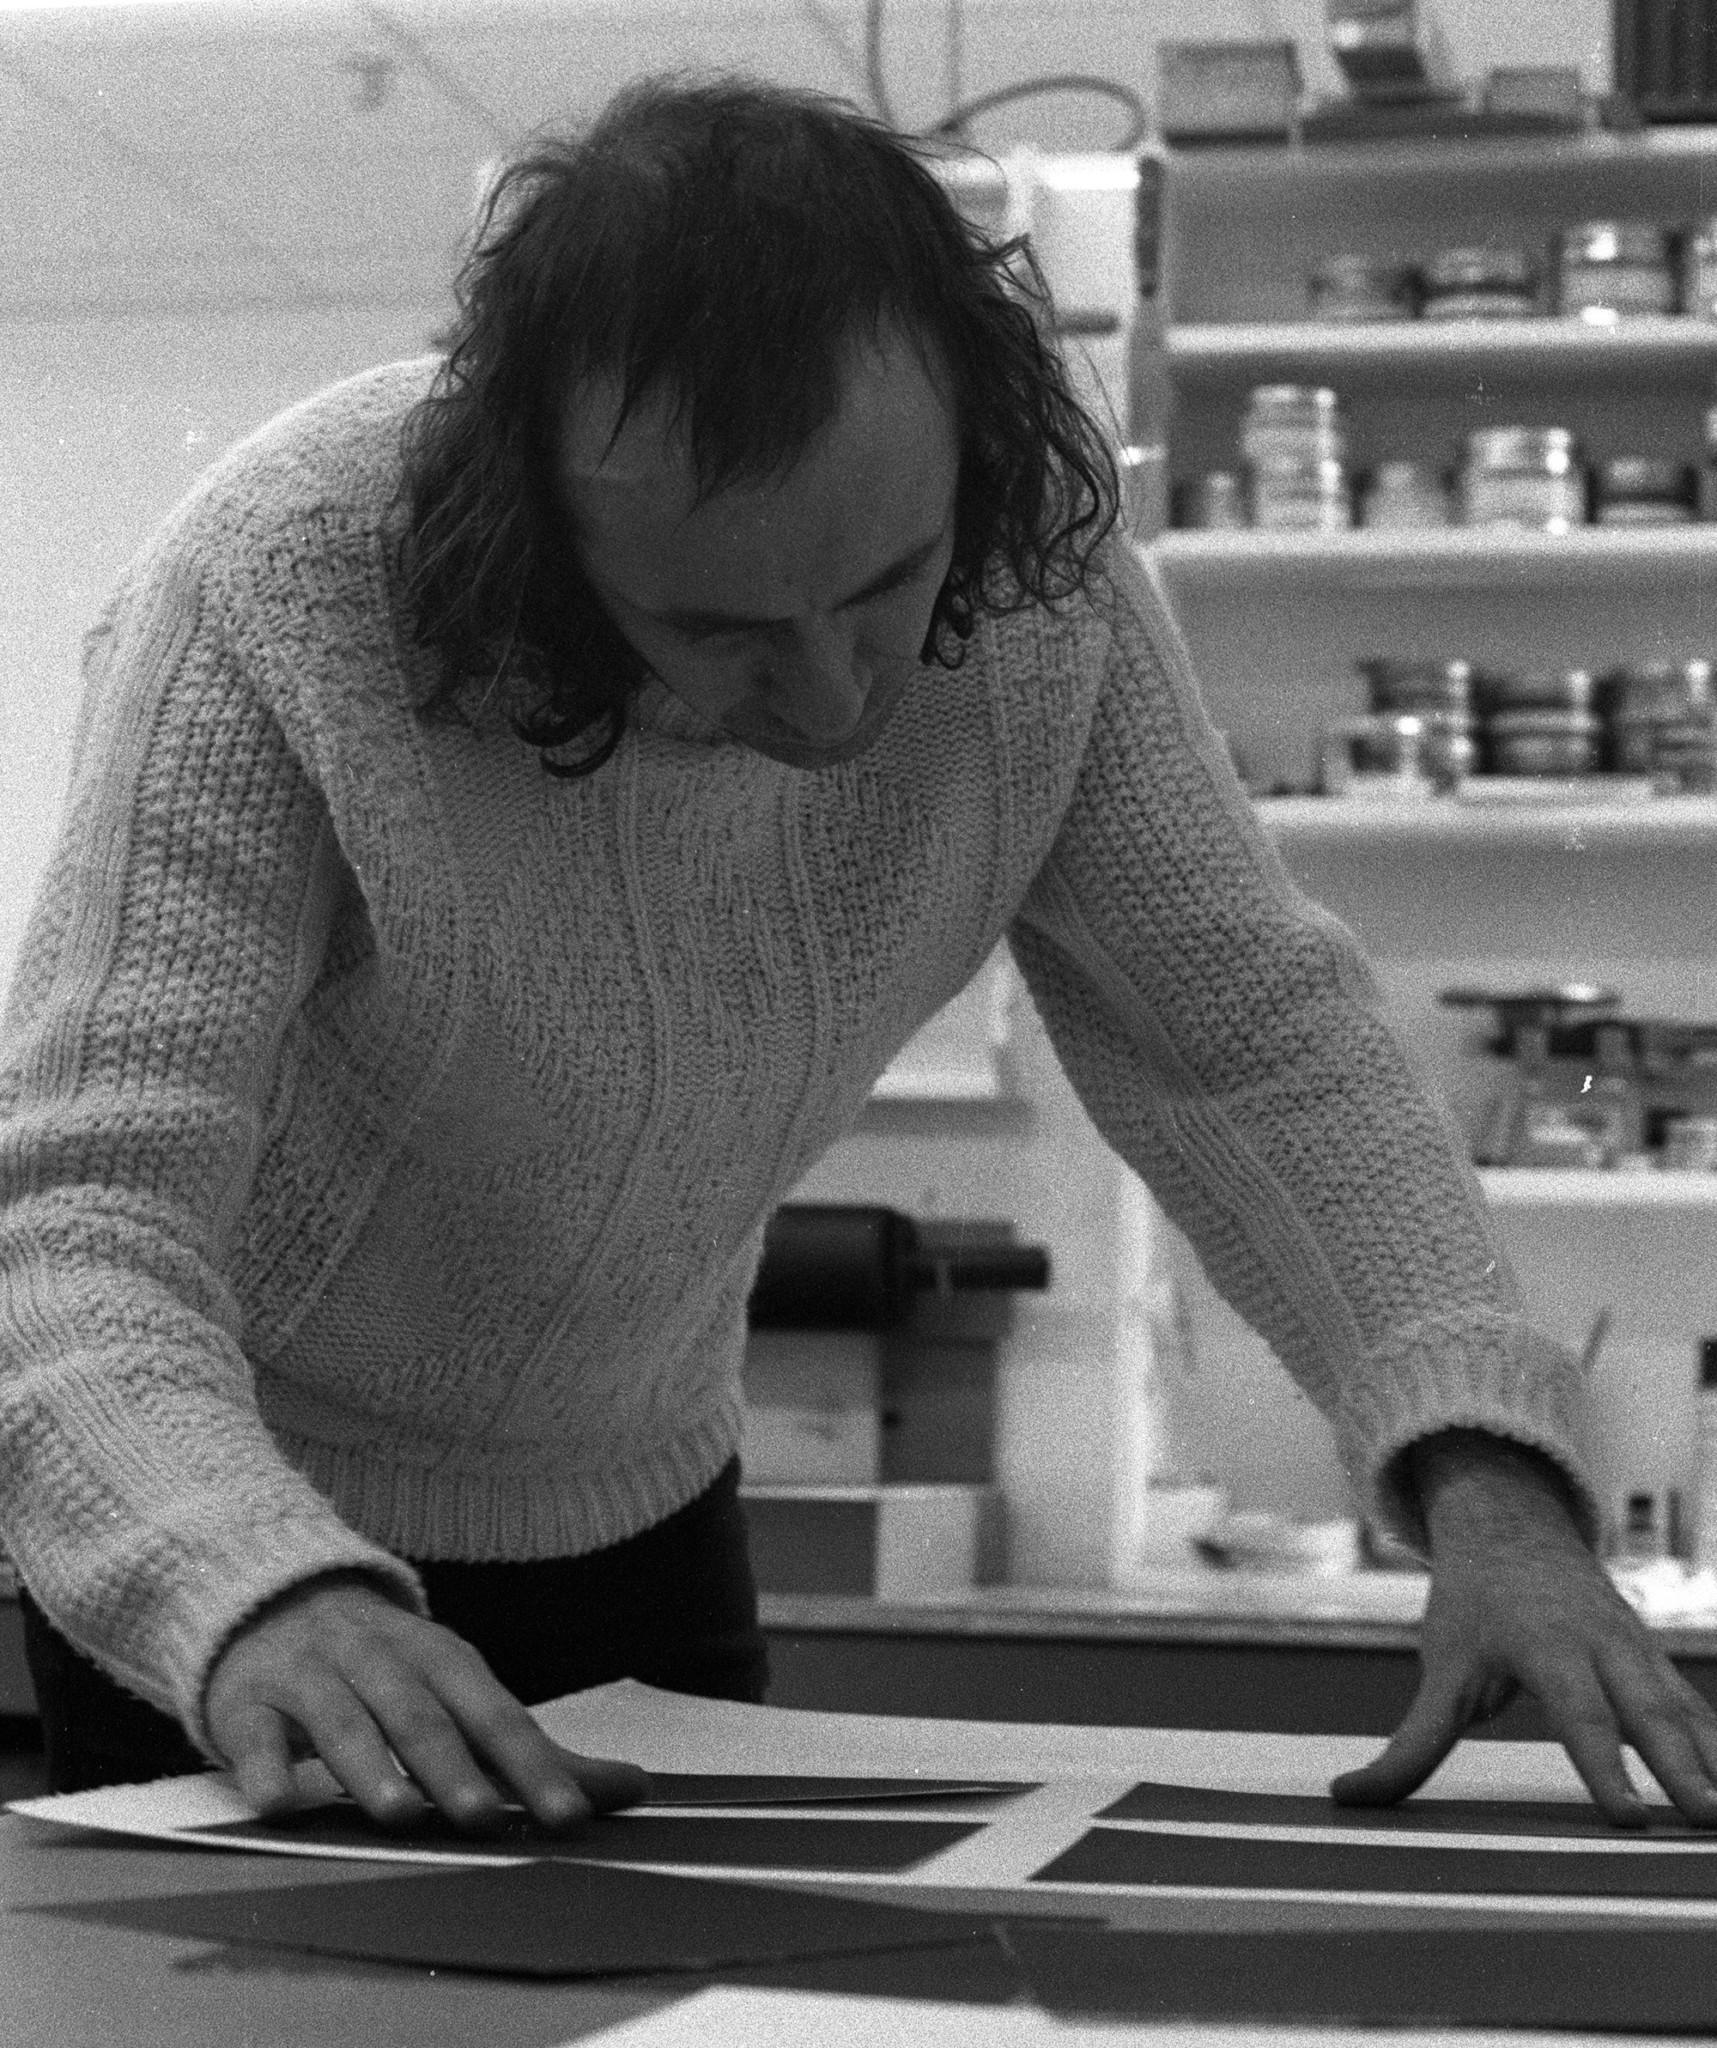 Black and white photo of artist Vito Acconci, with shoulder length hair wearing a cable knit sweater adjusting prints in the print studio. A shelf of inks and chemicals is behind him.